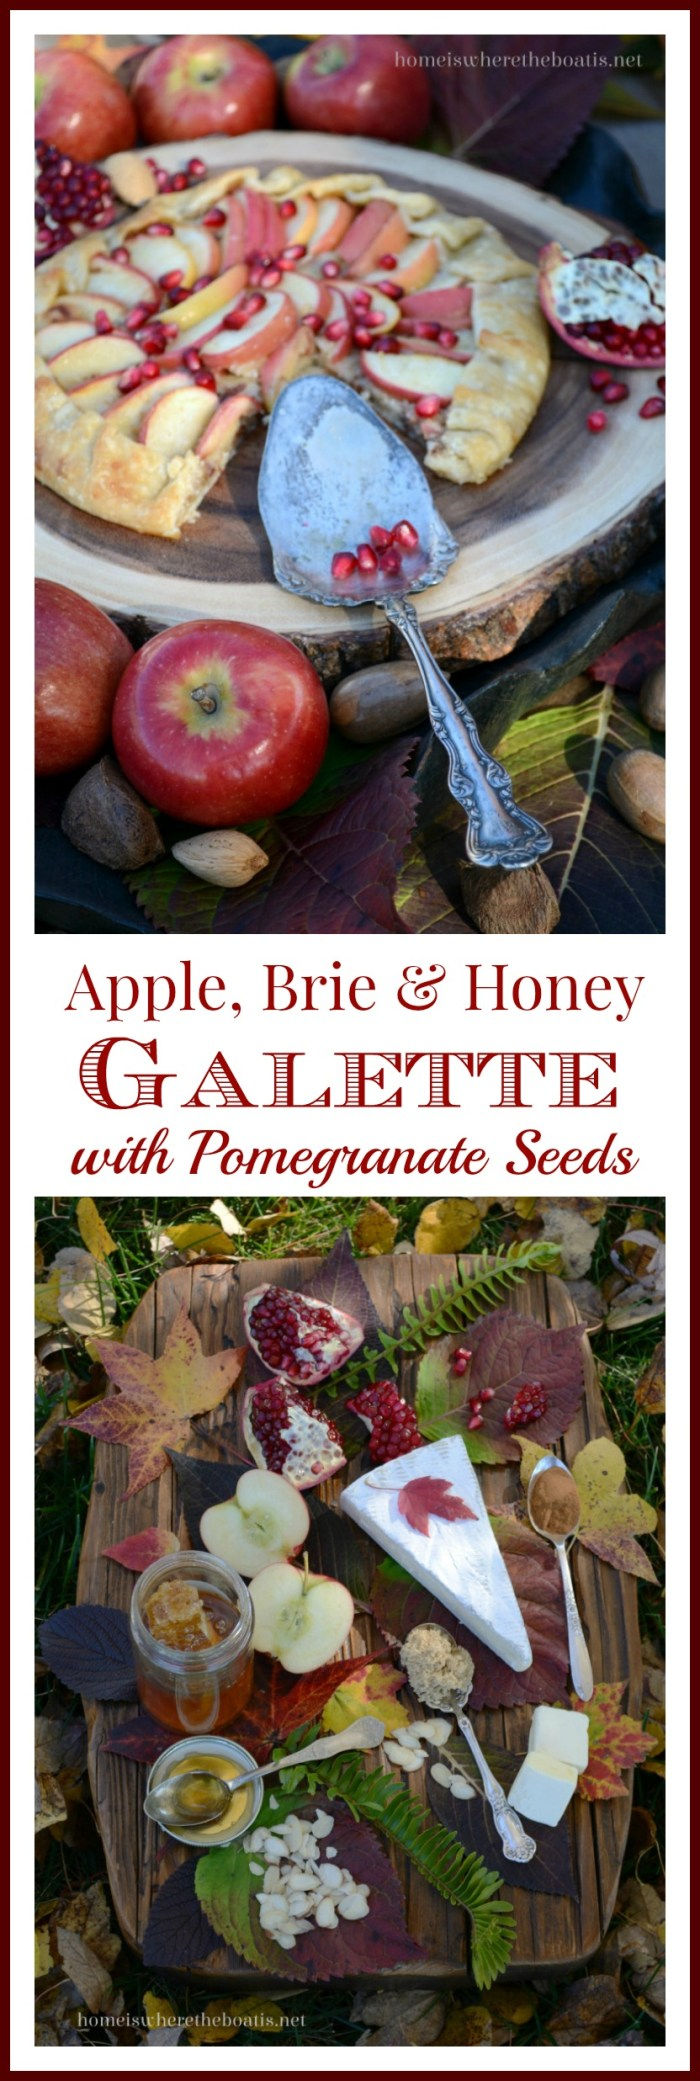 Apple, Brie & Honey Galette with Pomegranate Seeds | homeiswheretheboatis.net #fall #apples #desserts